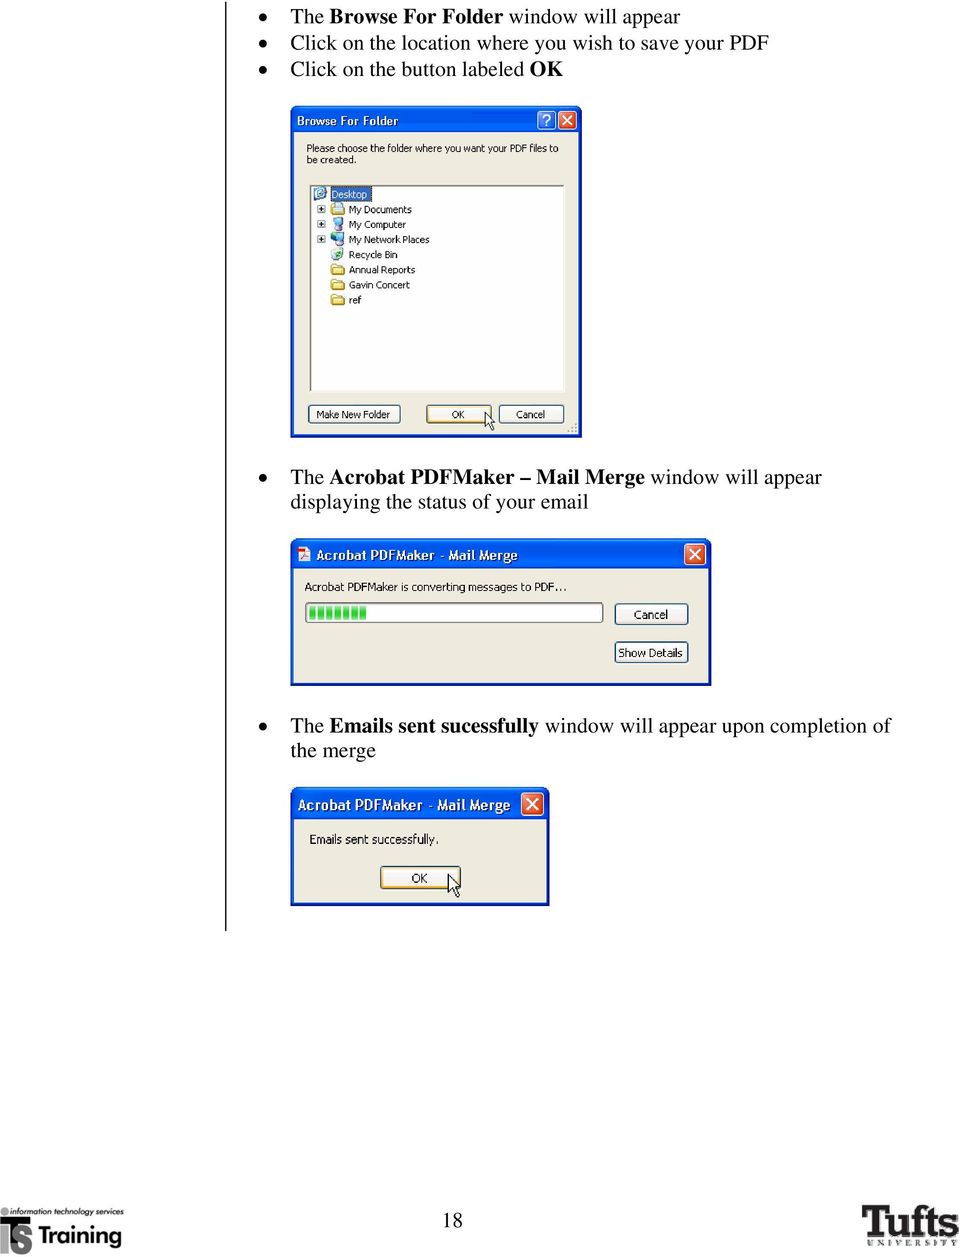 PDFMaker Mail Merge window will appear displaying the status of your